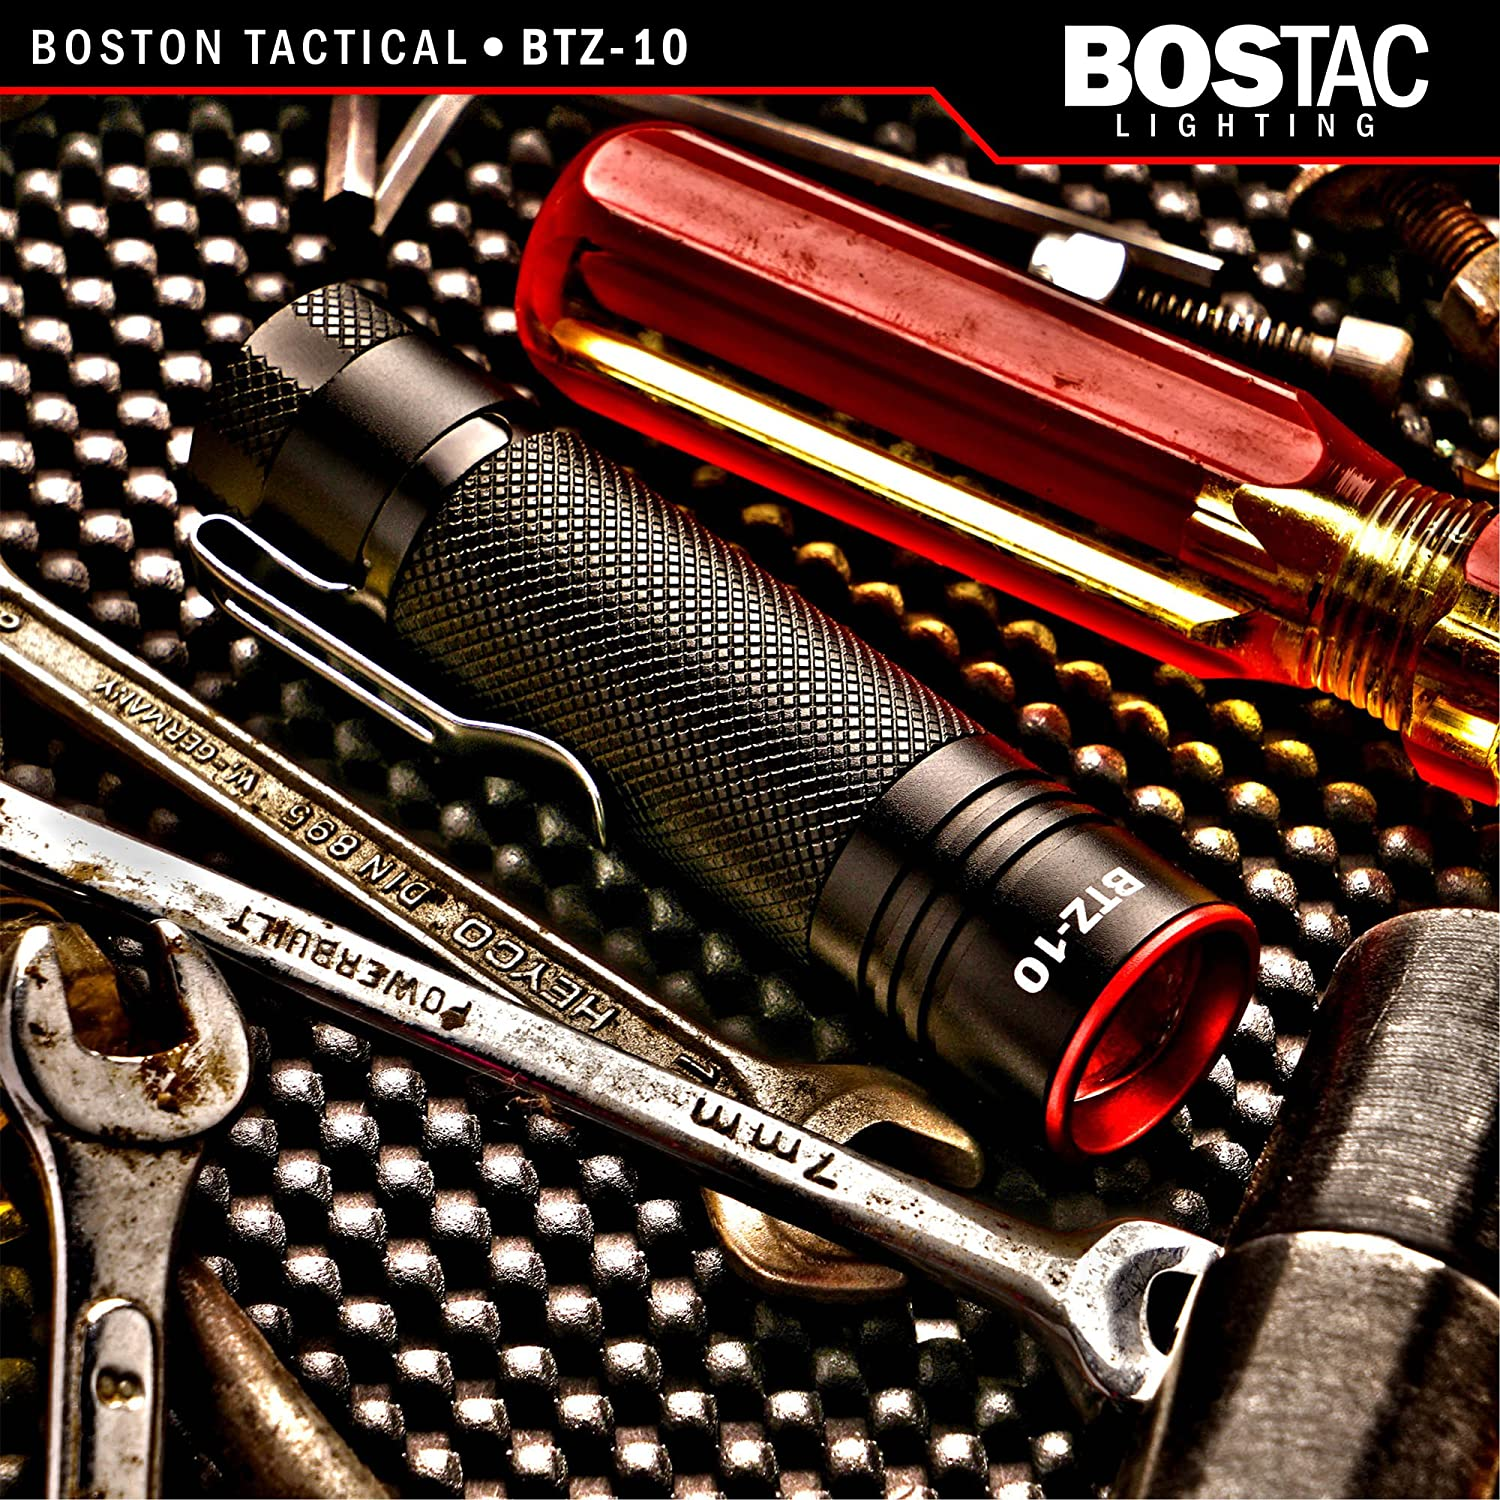 BOSTACTM BTZ-10 Tactical Flashlight - Penlight by Boston Tactical with Tiny High-Powered CREE USA LED Bulb, 900 Effective Lumens, Mini Zoom Head, ...